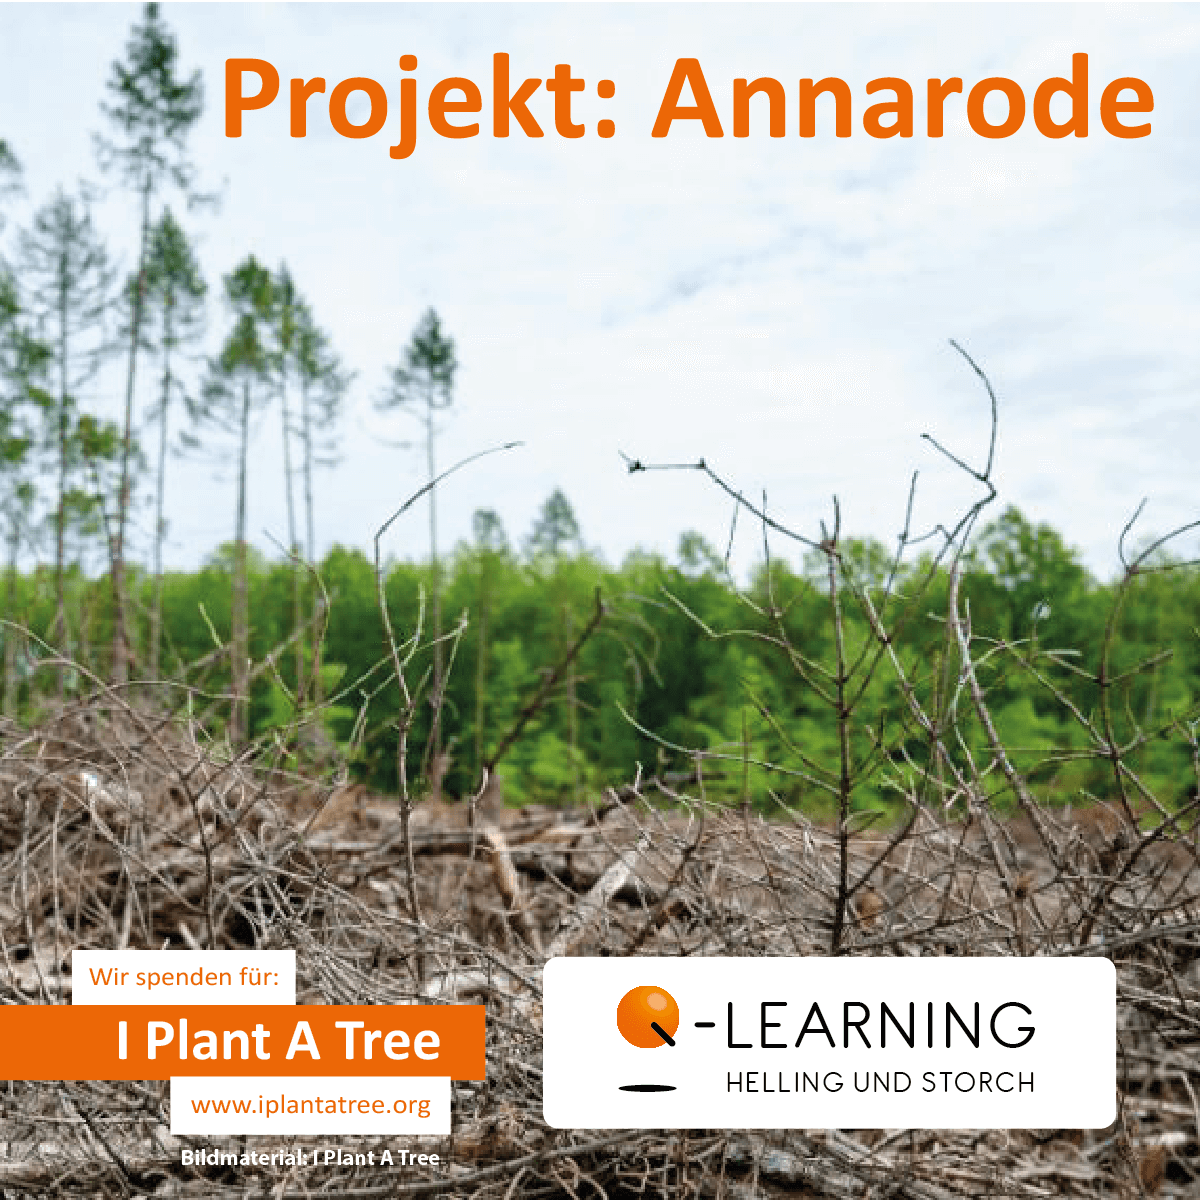 Q-LEARNING | I Plant A Tree Projekt Annarode 2020